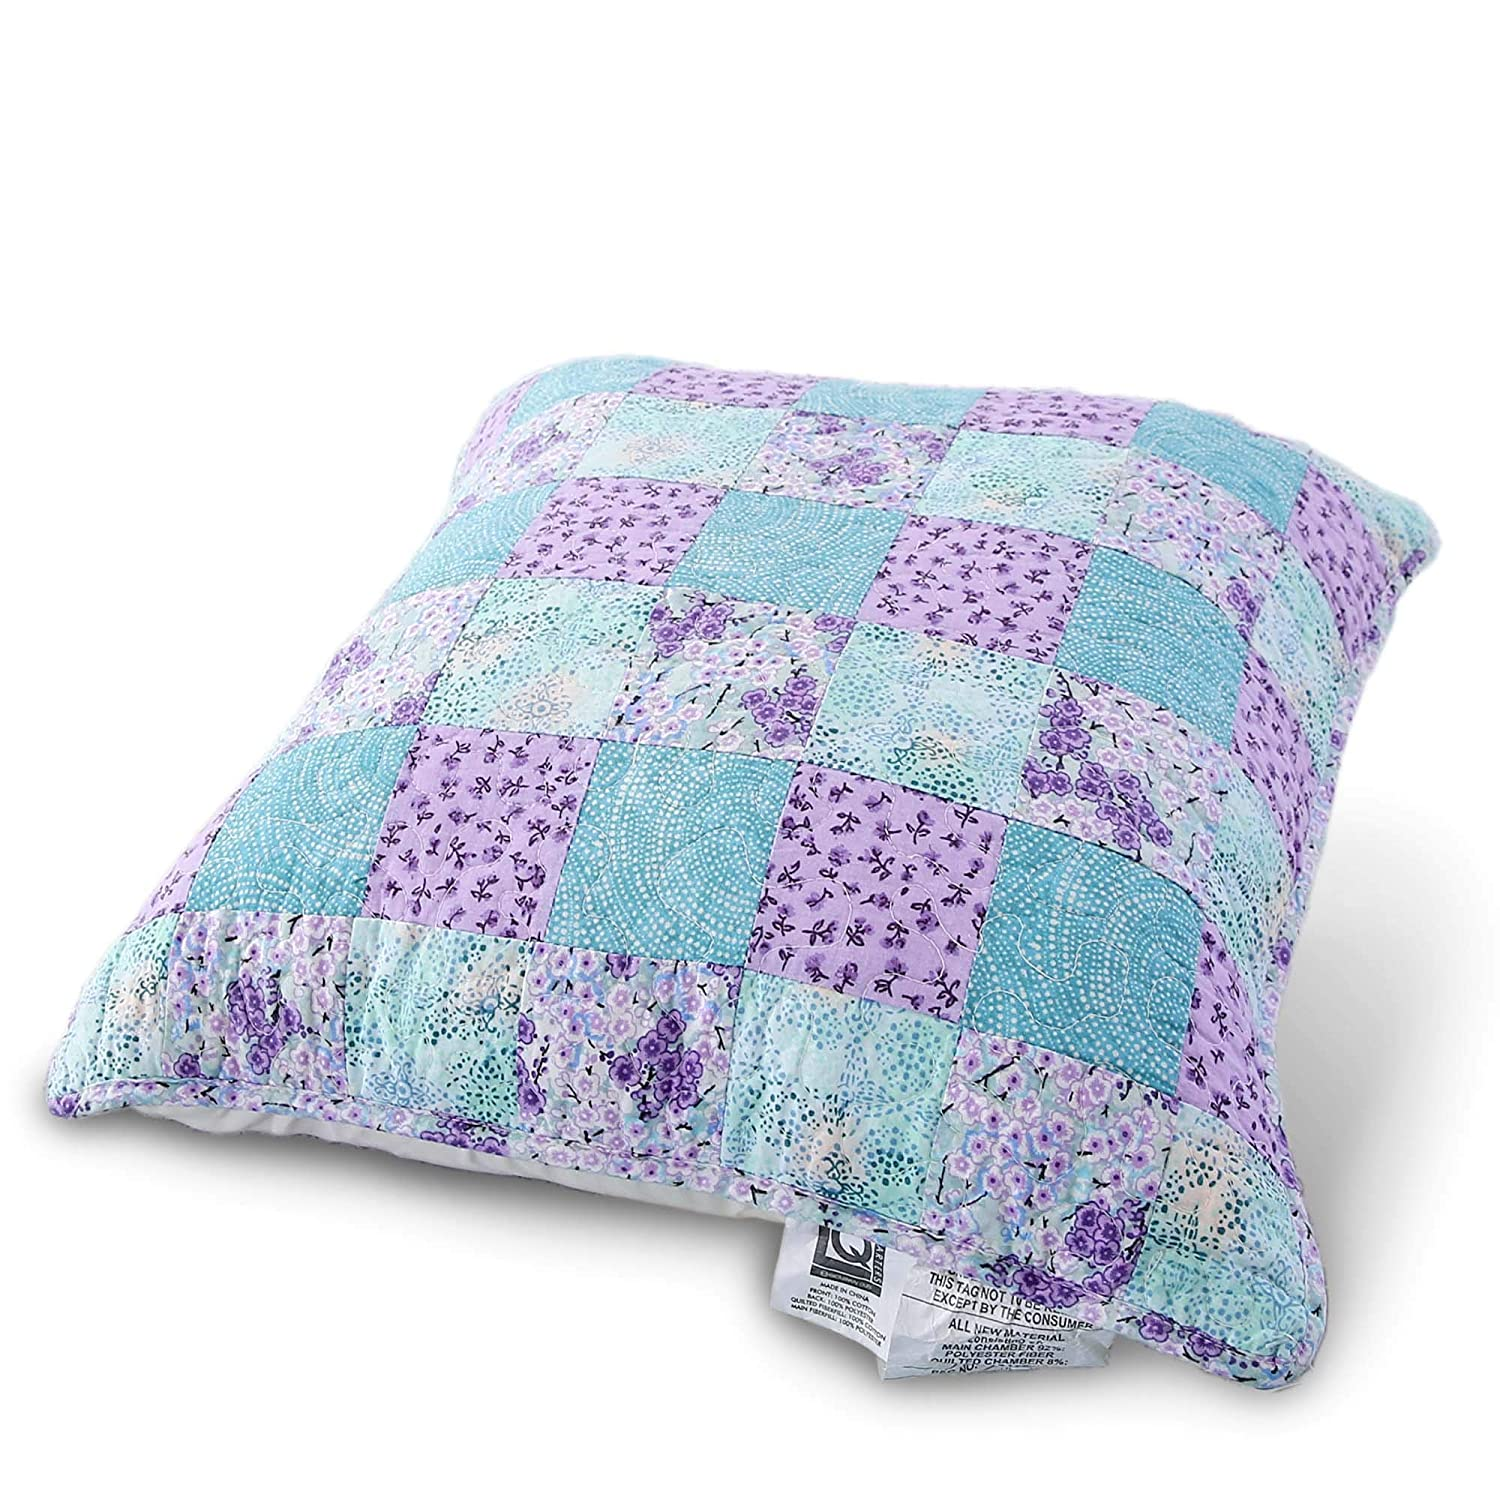 KASENTEX Luxurious Patchwork Bedspread Embroidery Coverlet 100/% Cotton Quilt Machine Washable Oversize Twin